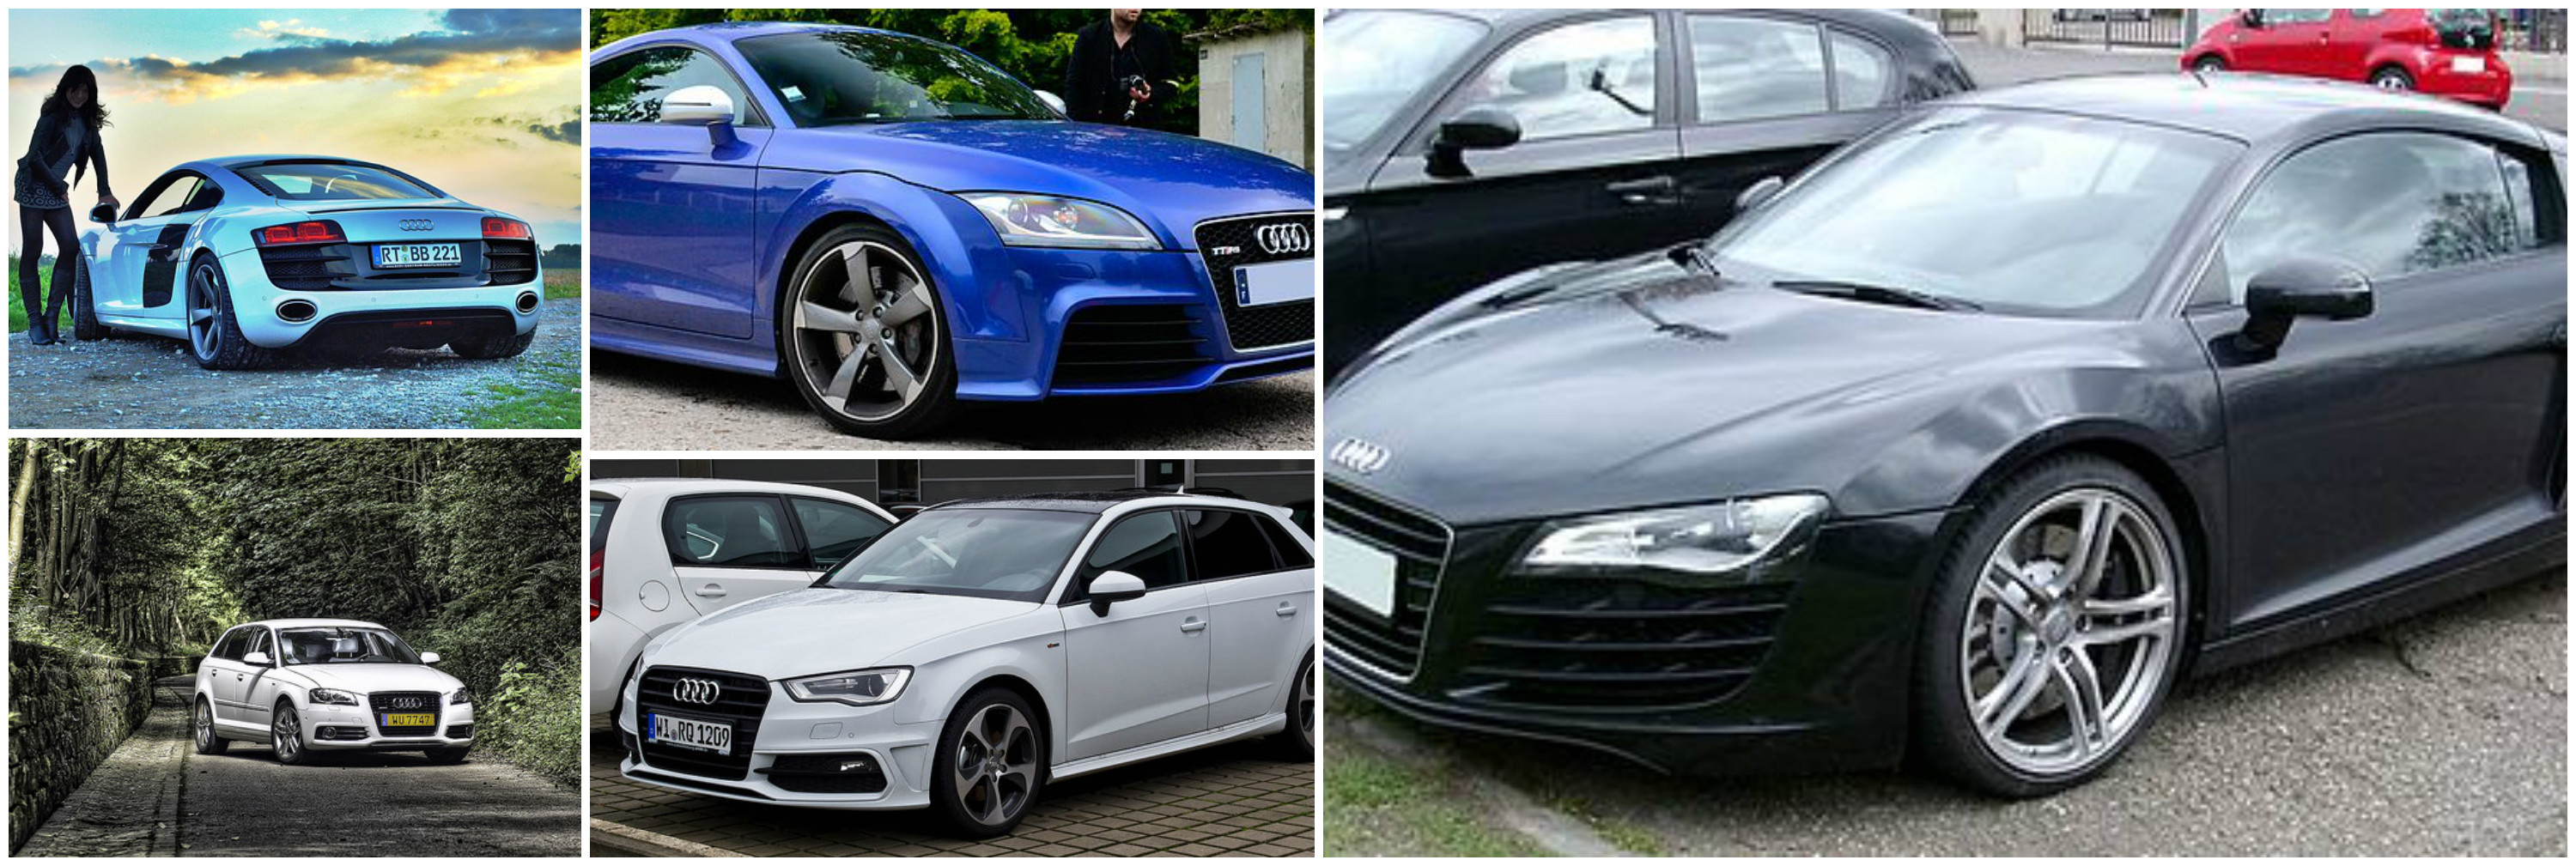 Past Present And Future The Best Of The Audi Range - Audi car range